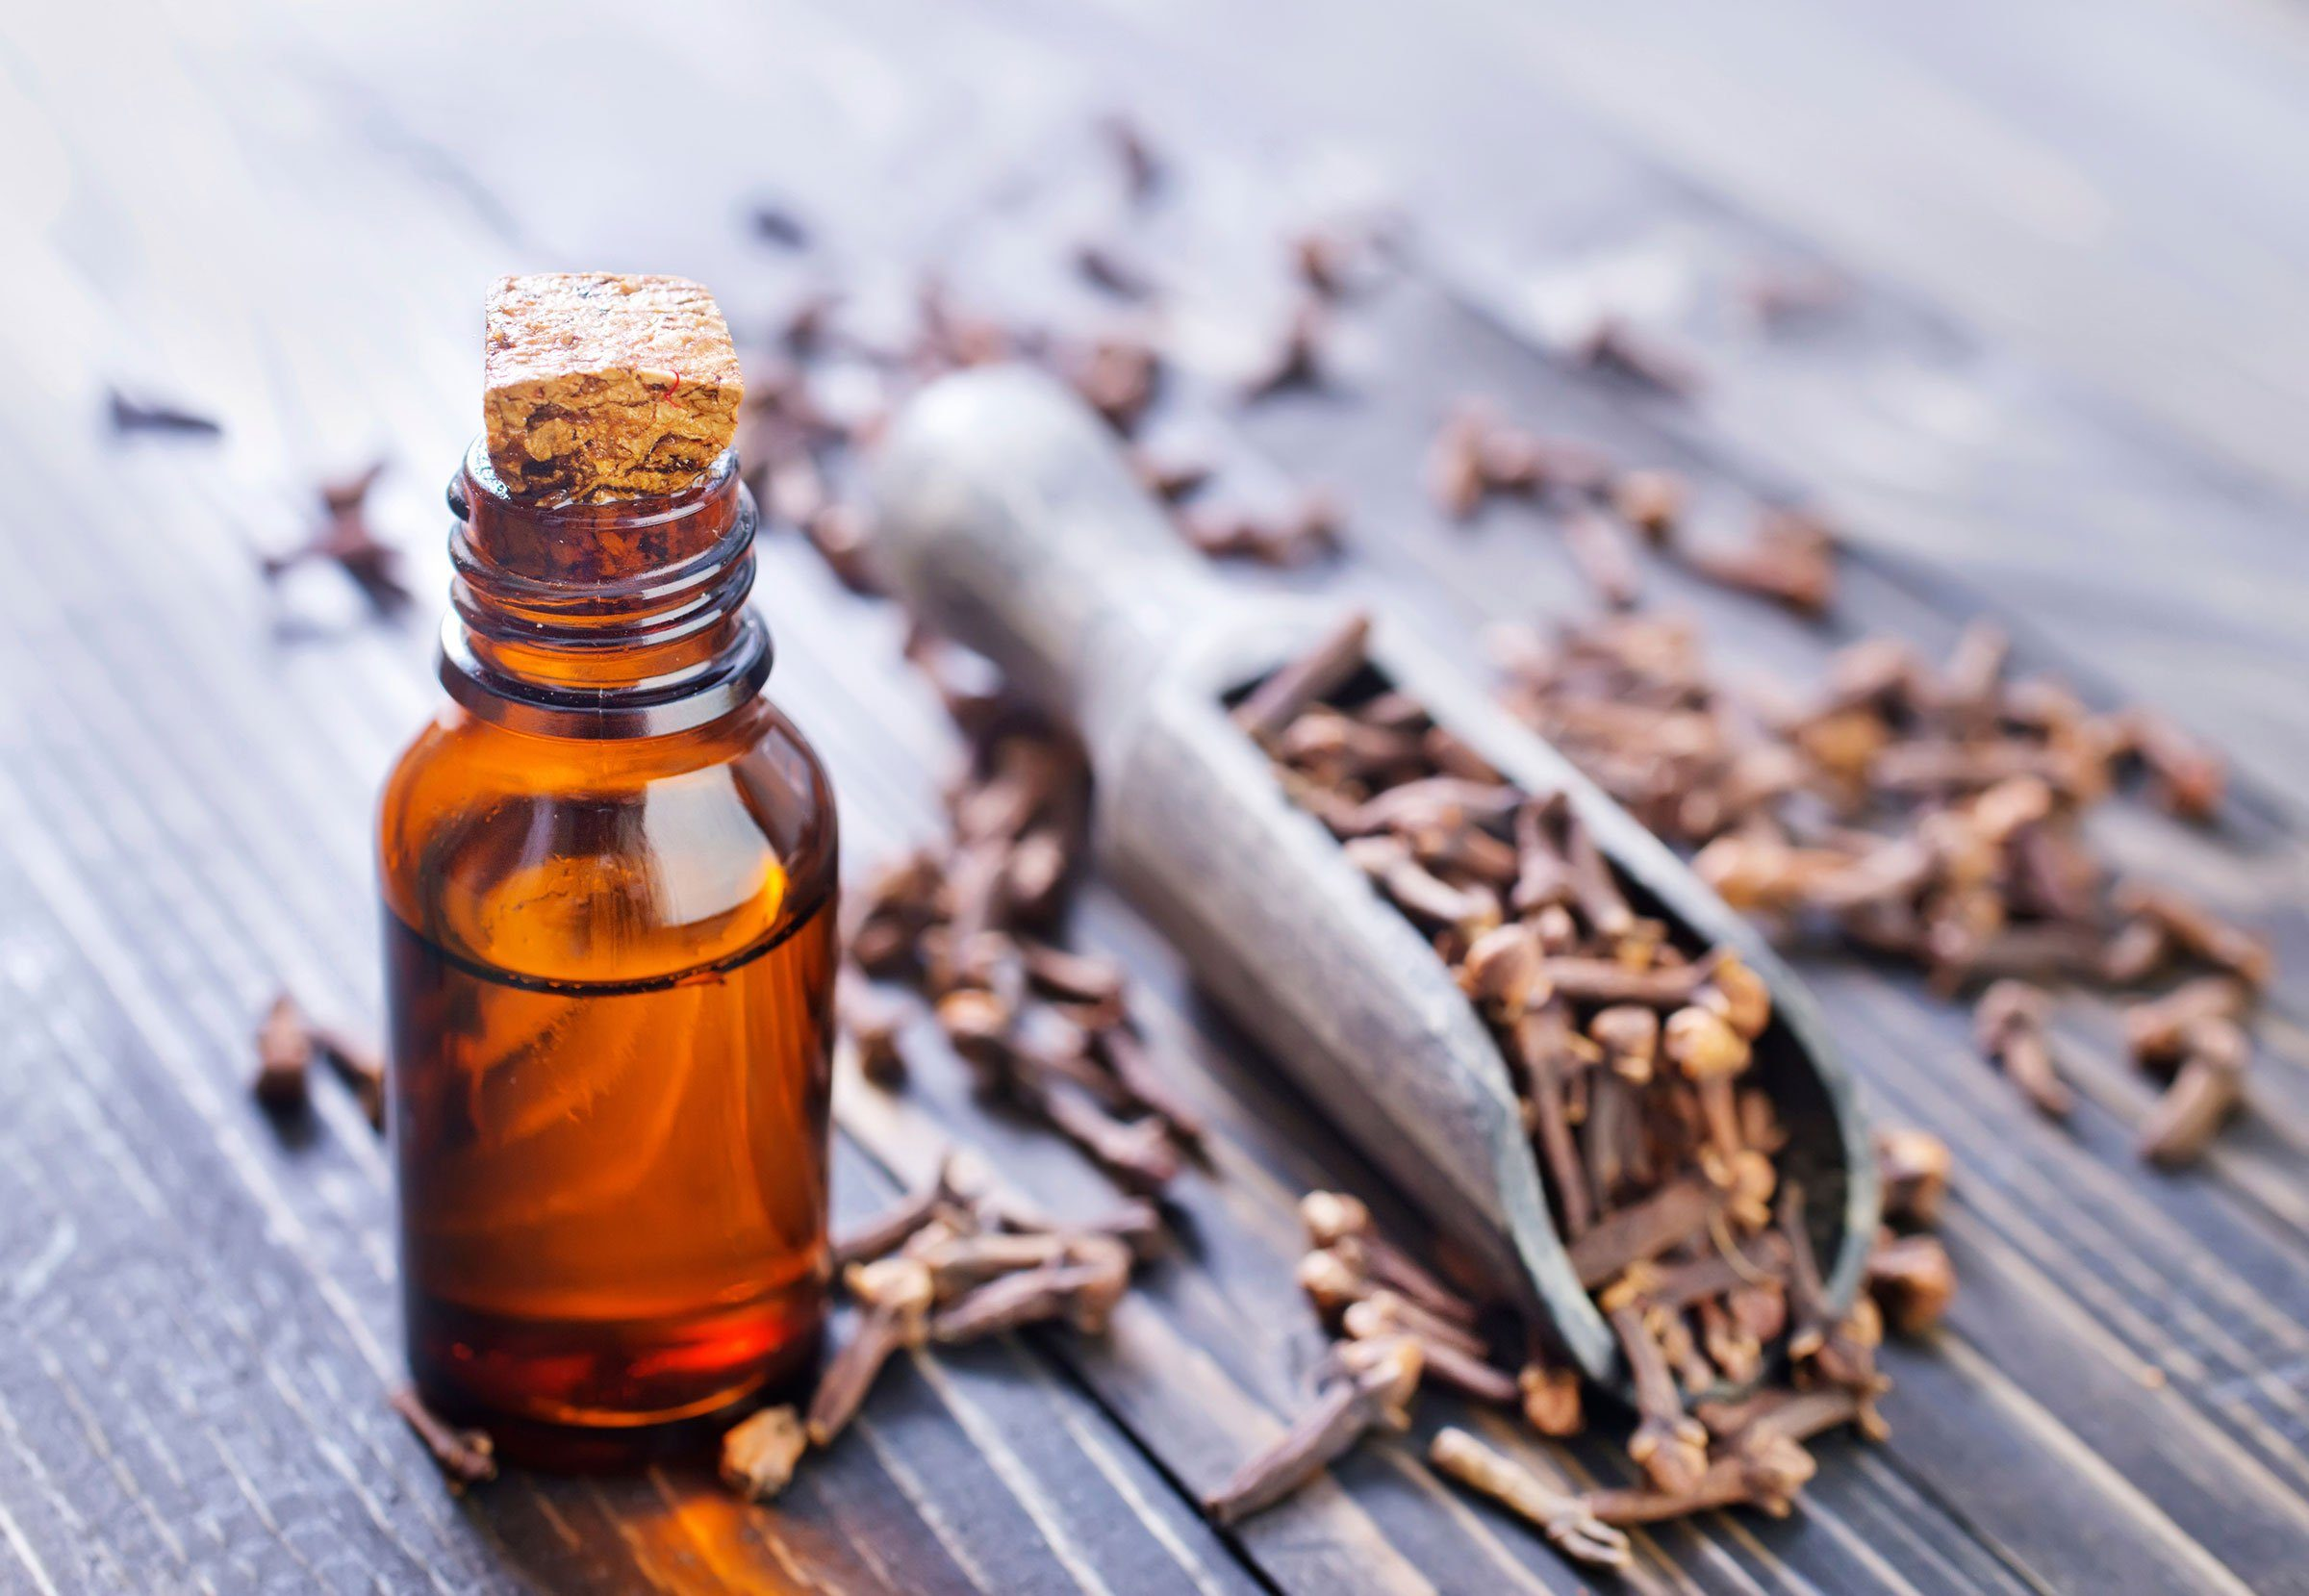 01-11-home-remedies-for-a-toothache-clove-oil